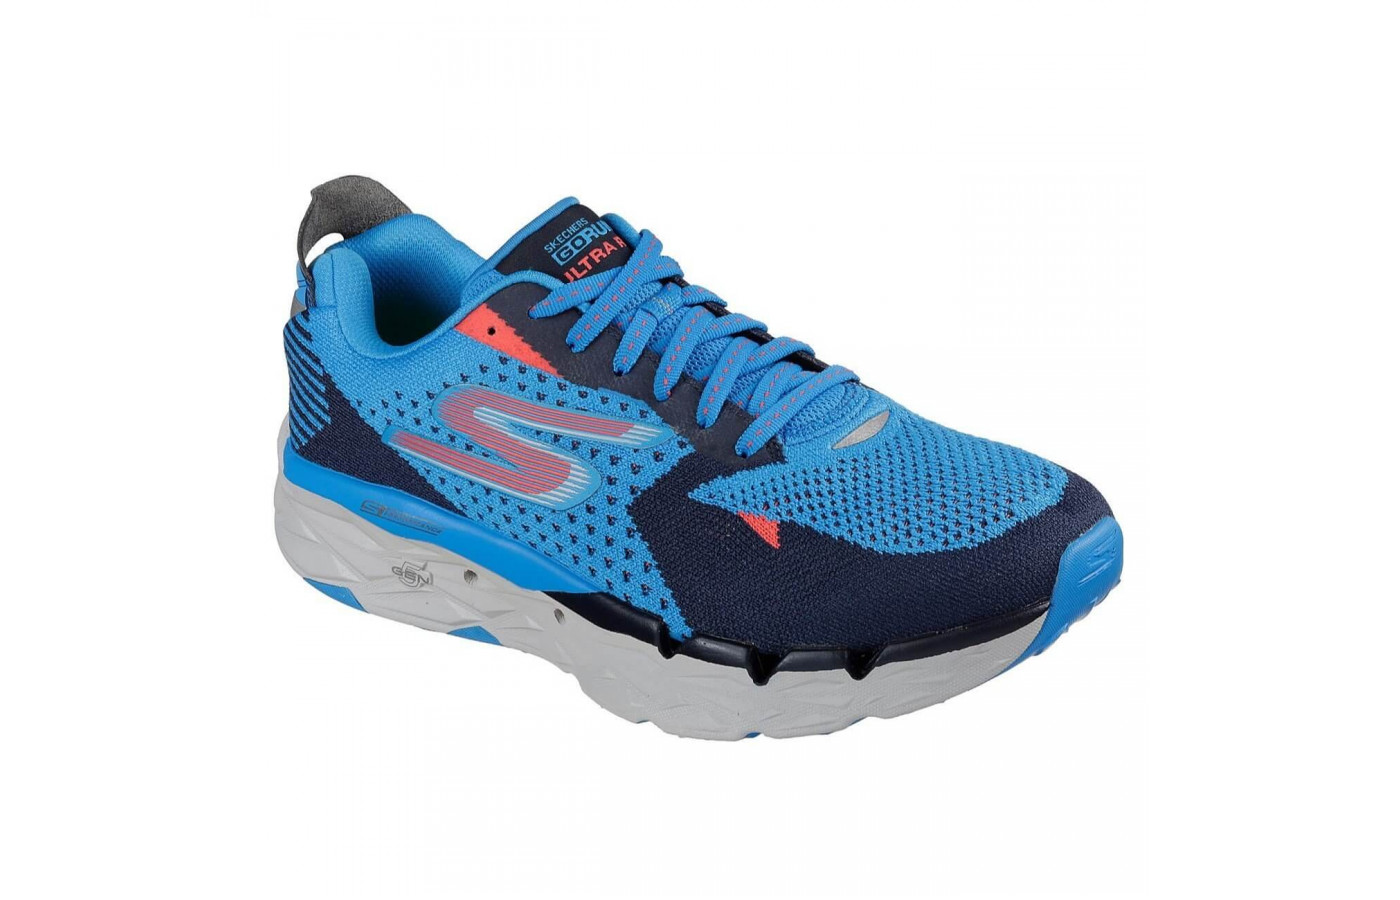 The Skechers GoRun Ultra Road has a midsole composed of Resalyte foam